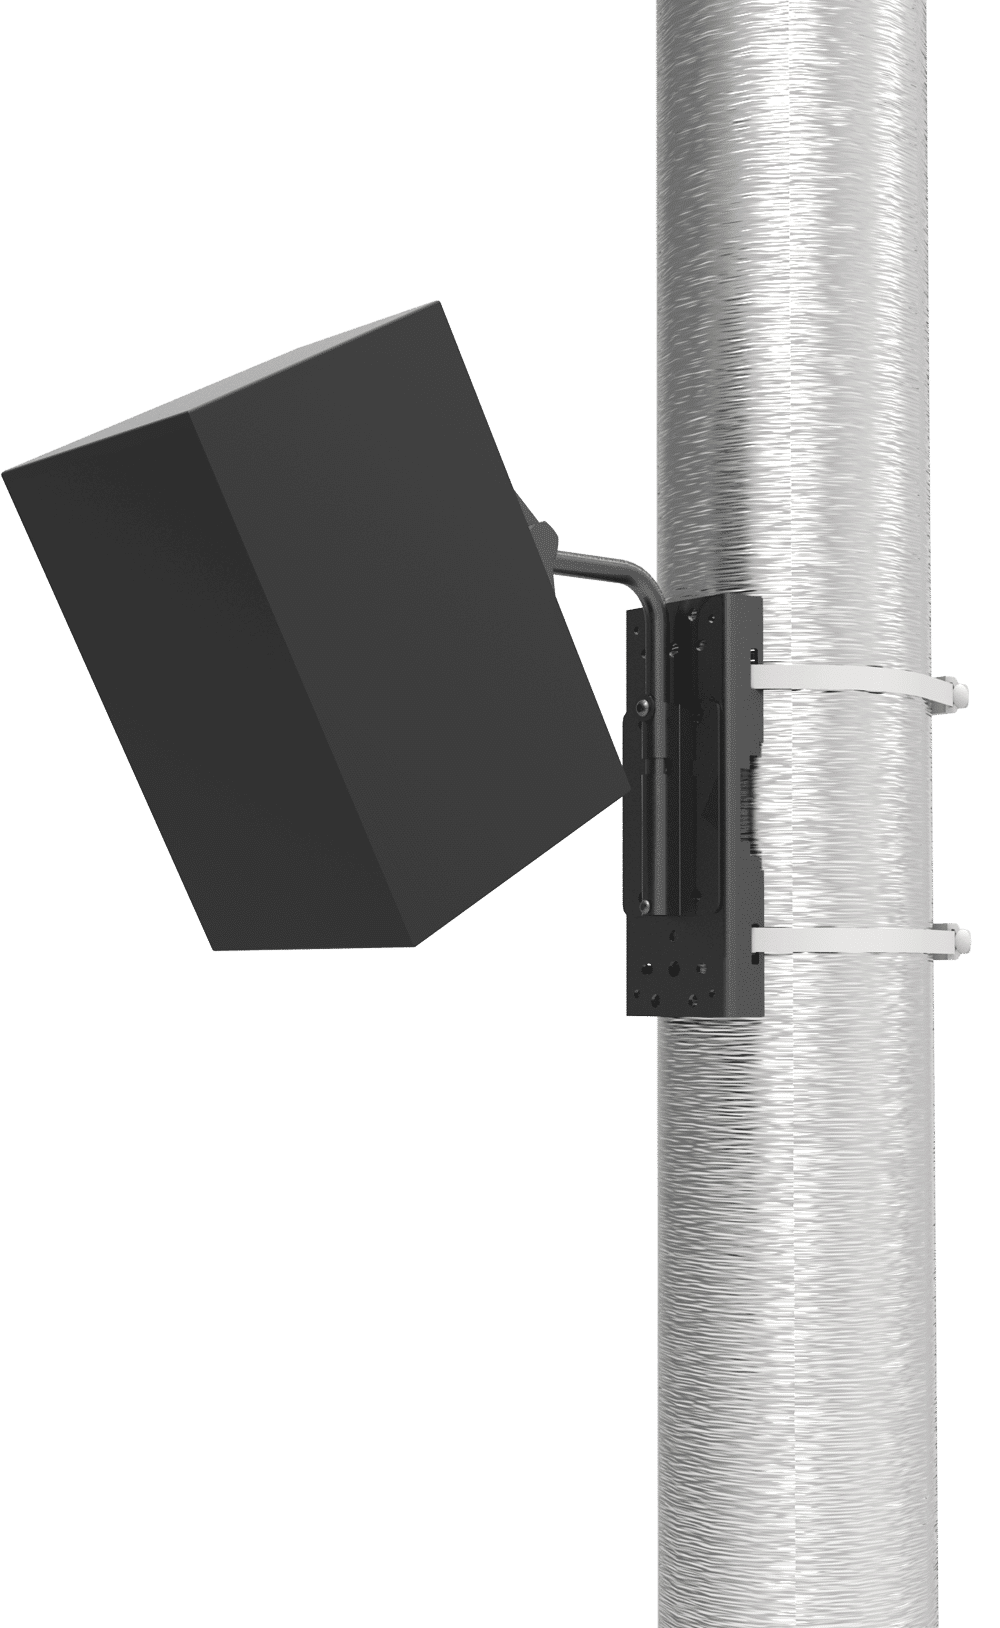 Indoor Audio Pole Mounts, Indoor Speaker Pole Mounts, Pole Audio Mounts, Pole Speaker Mounts, Vertical Audio Pole Mounts, Vertical Speaker Pole Mounts, Horizontal Audio Pole Mounts, Horizontal Speaker Pole Mounts